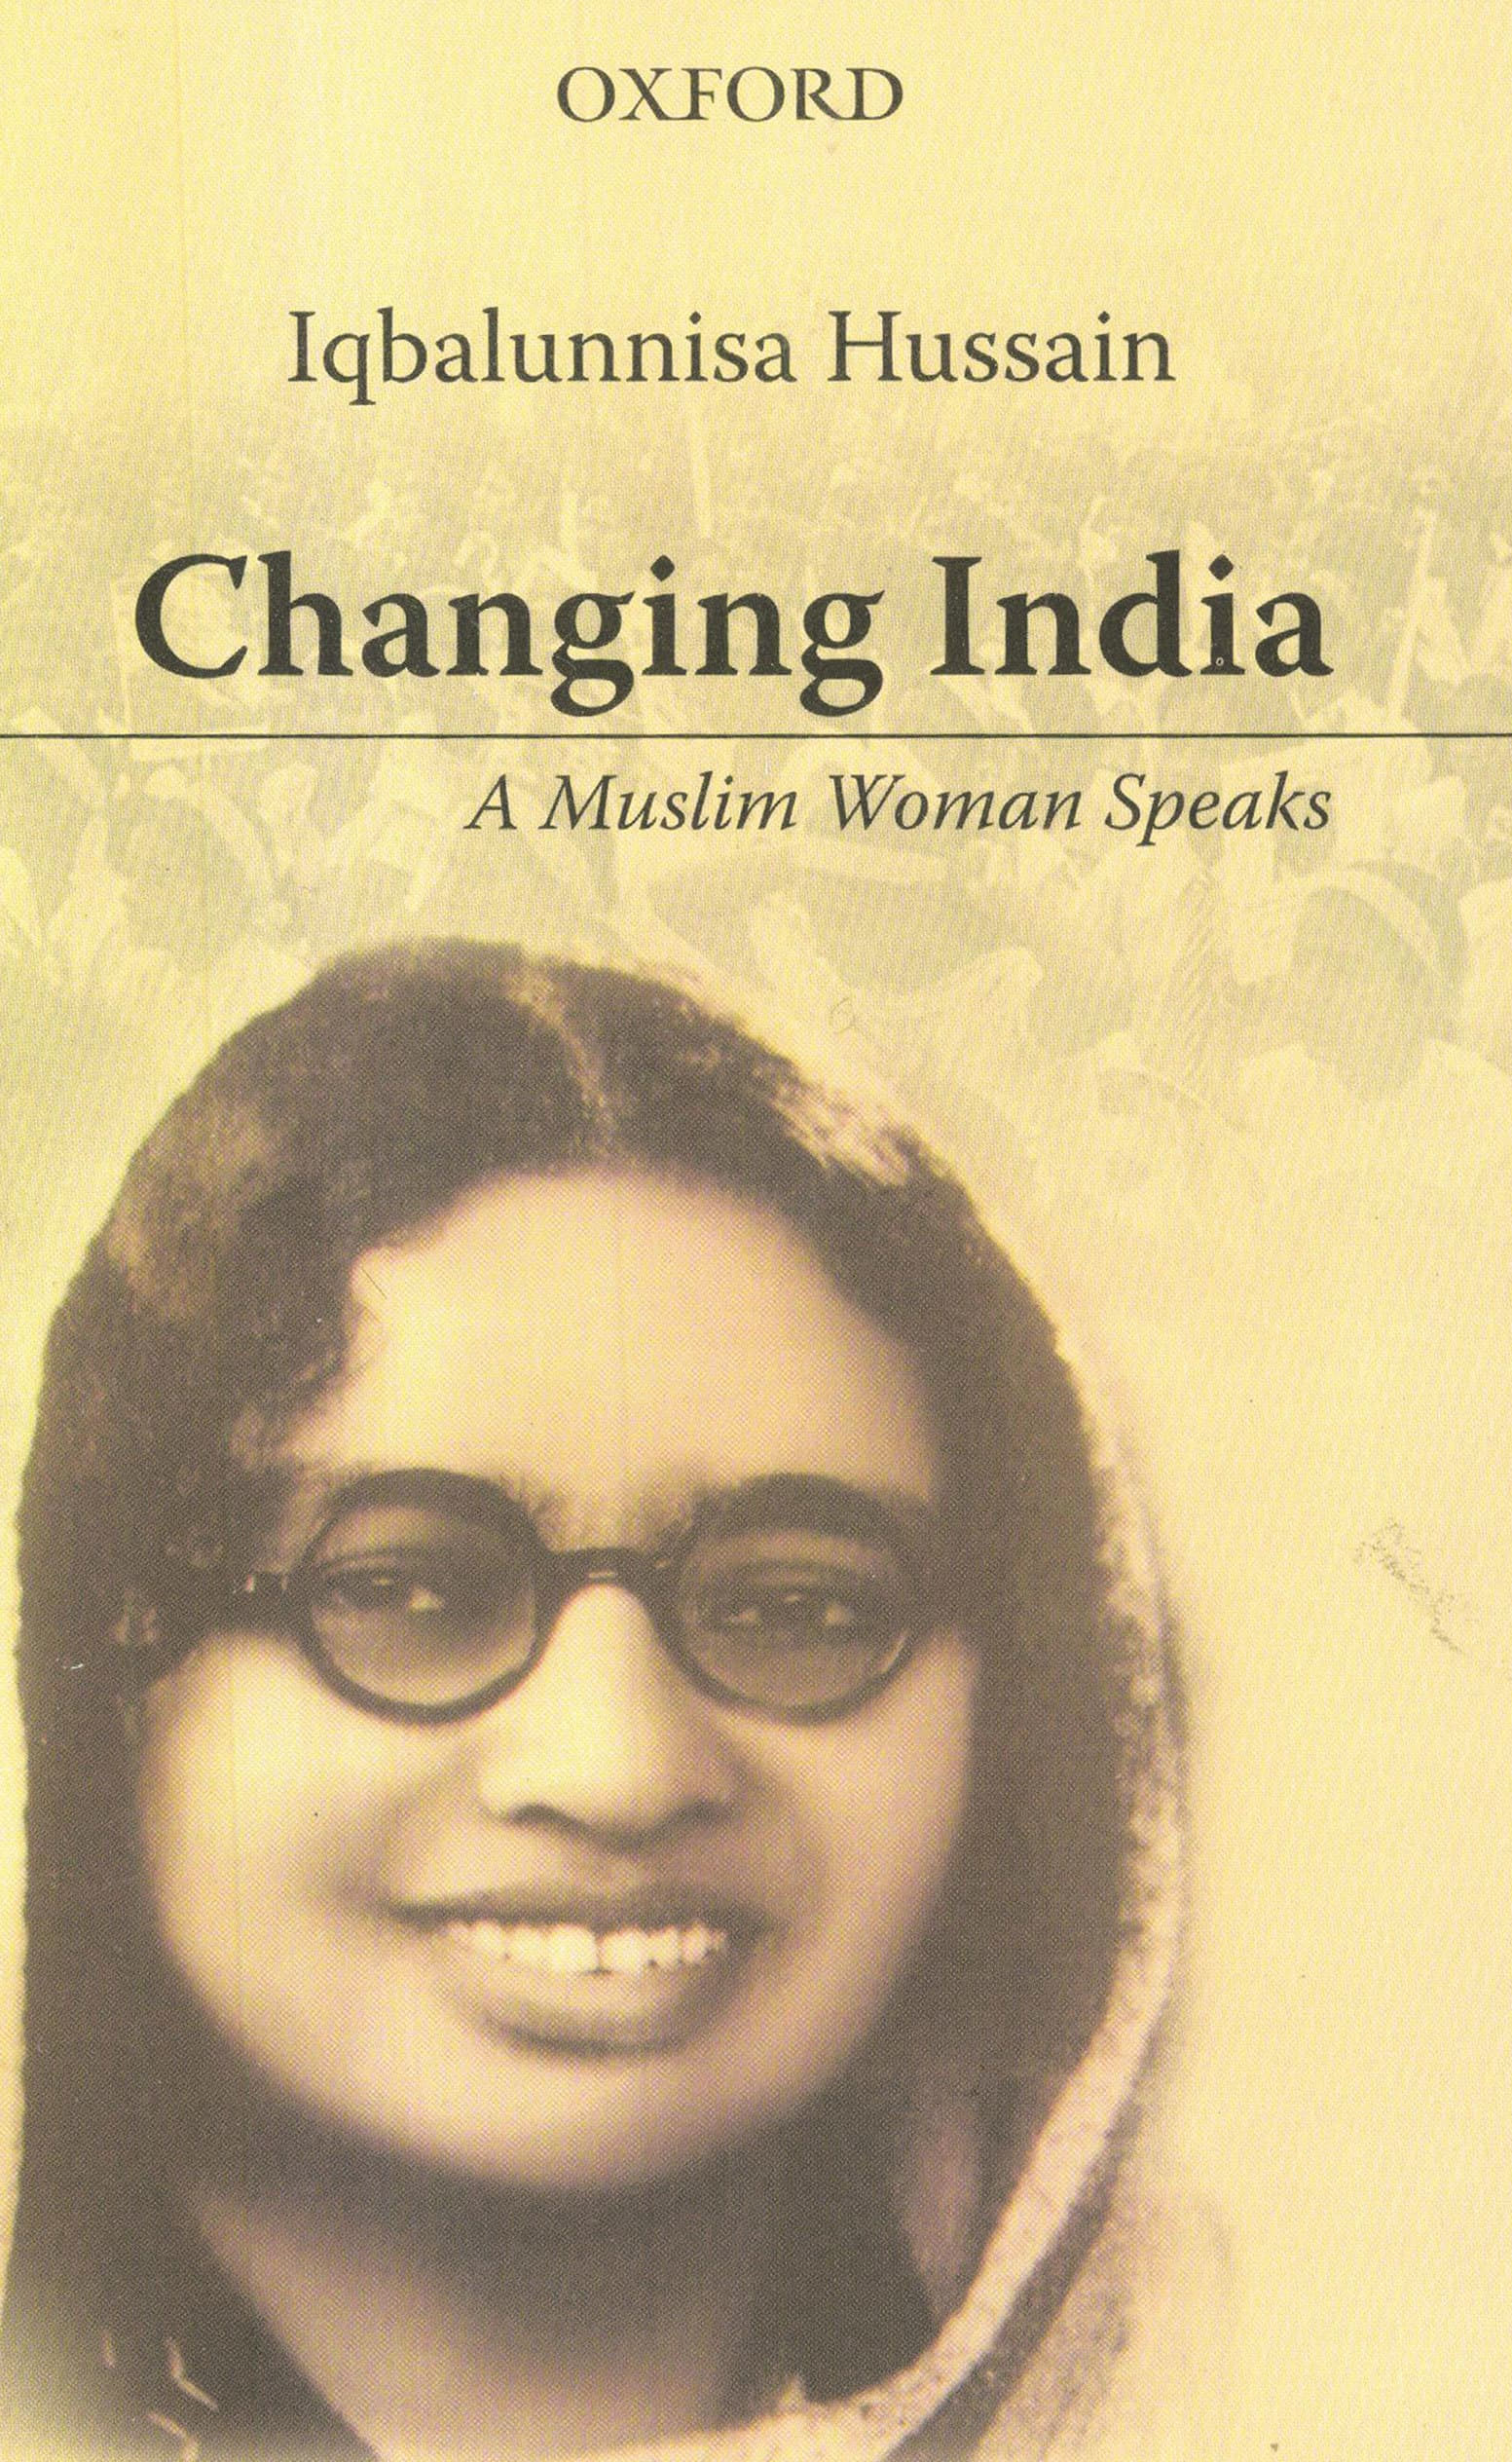 Changing India: A Muslim Woman Speaks   By Iqbalunnisa Hussain